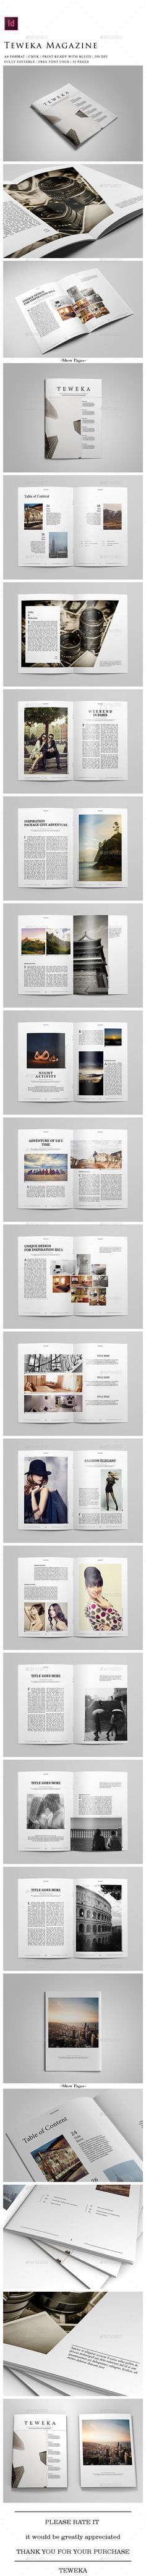 Teweka Magazine by Teweka Teweka Magazine Files Included :30 Pages A4 .idml format for Indesign CS 4 or higher .indd format for Indesign CS 6 and CC PDF P